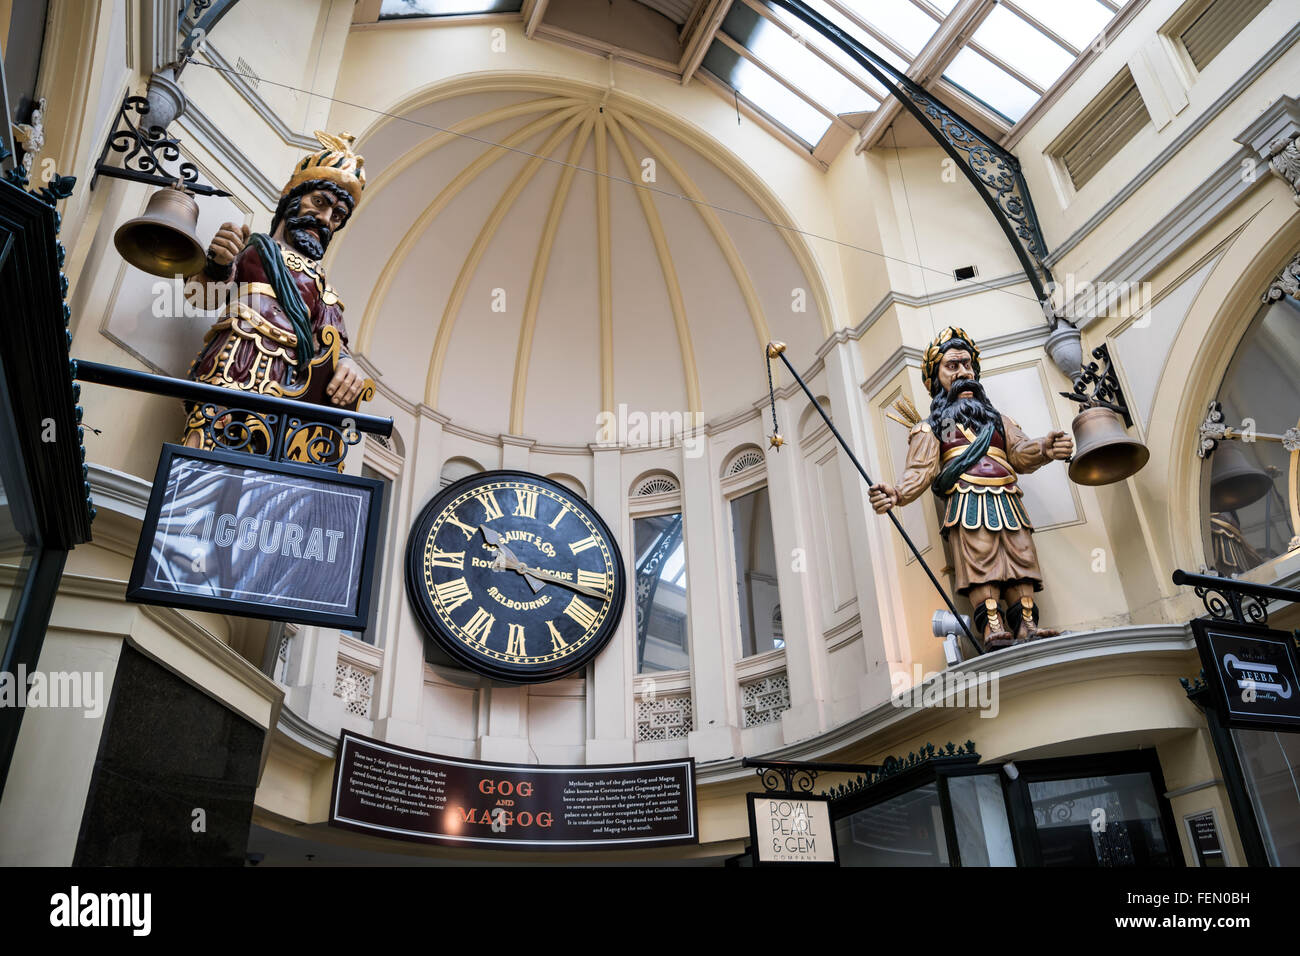 Gog and Magog striking Gaunt's clock, The Royal Arcade, Melbourne, Australia - Stock Image